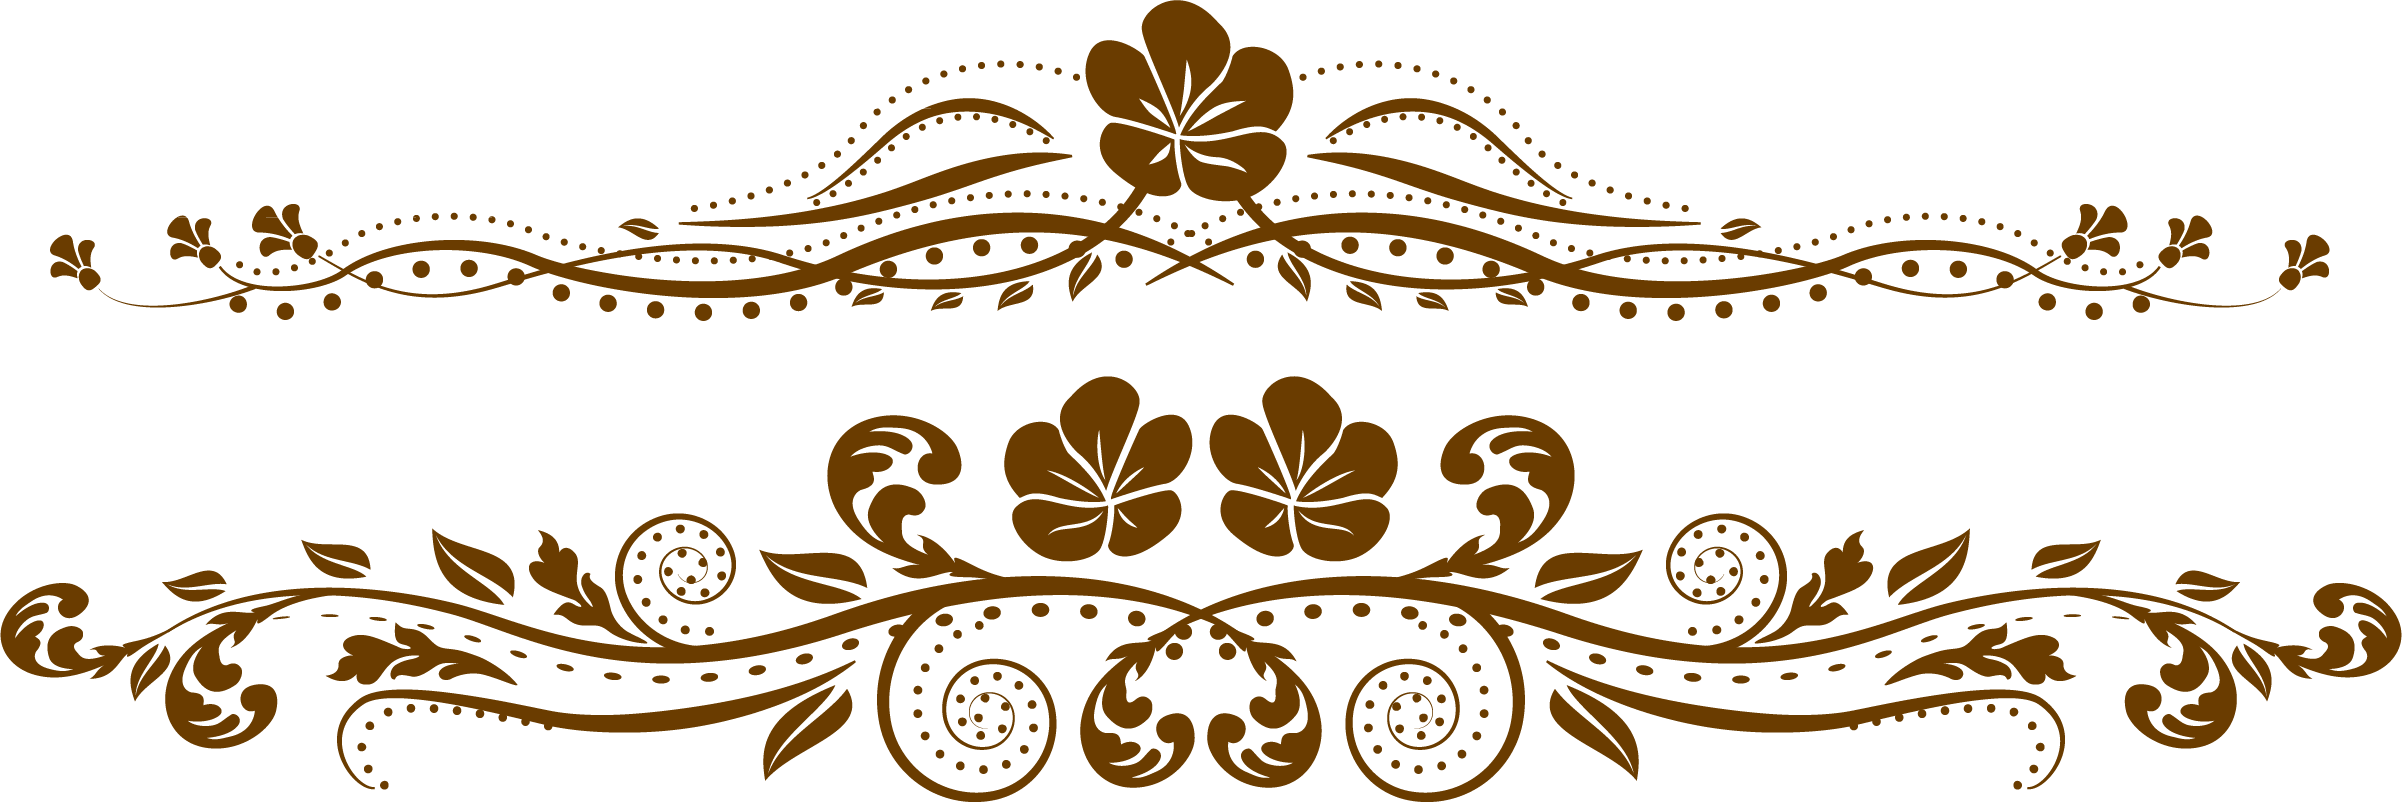 2402x802 Collection Of Free Lace Vector Illustrator. Download On Ubisafe